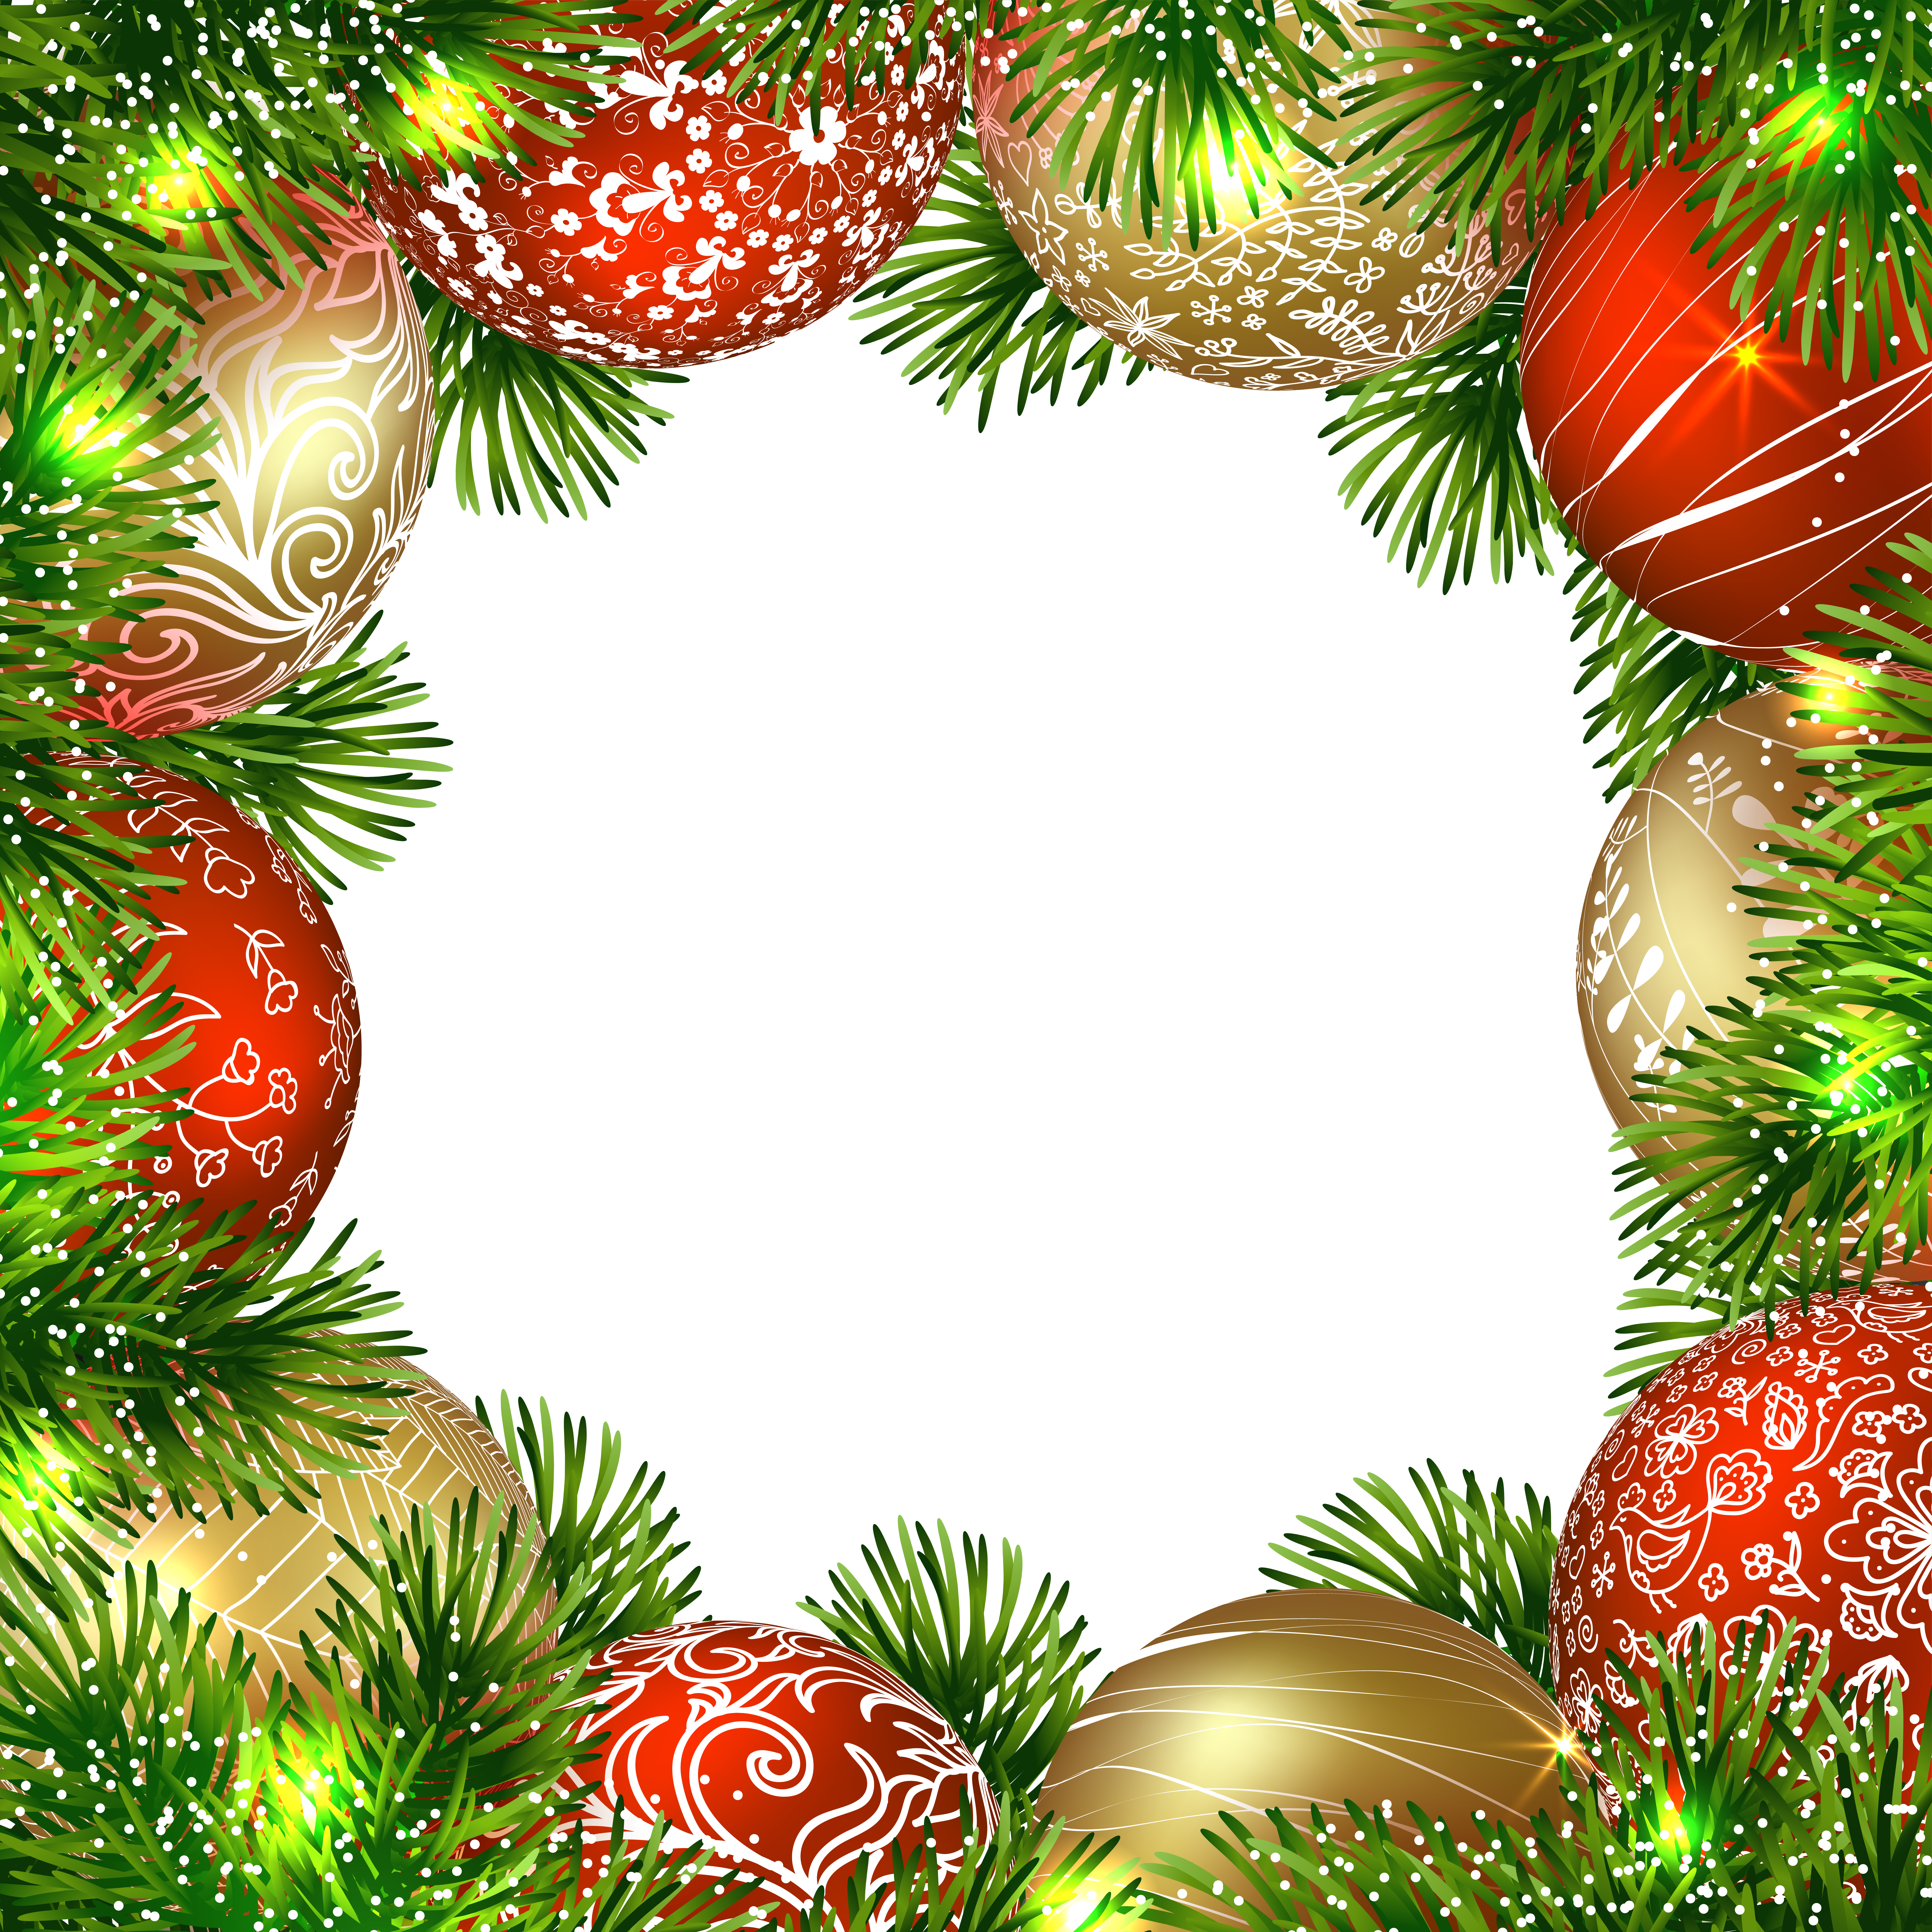 Christmas ornament border png. Transparent frame with ornaments